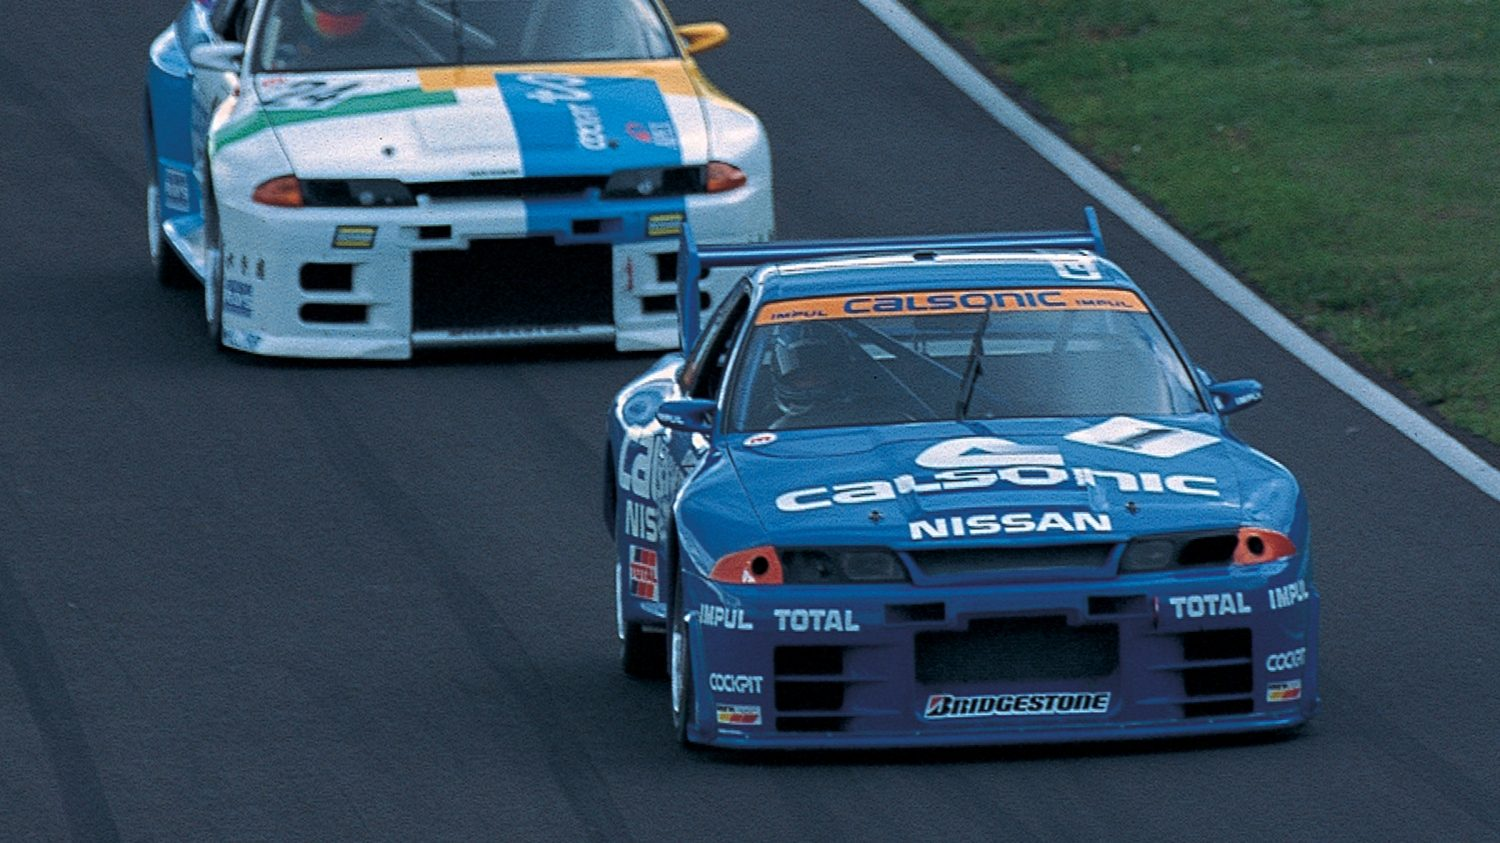 Nissan GT-R NISMO Calsonic sur circuit